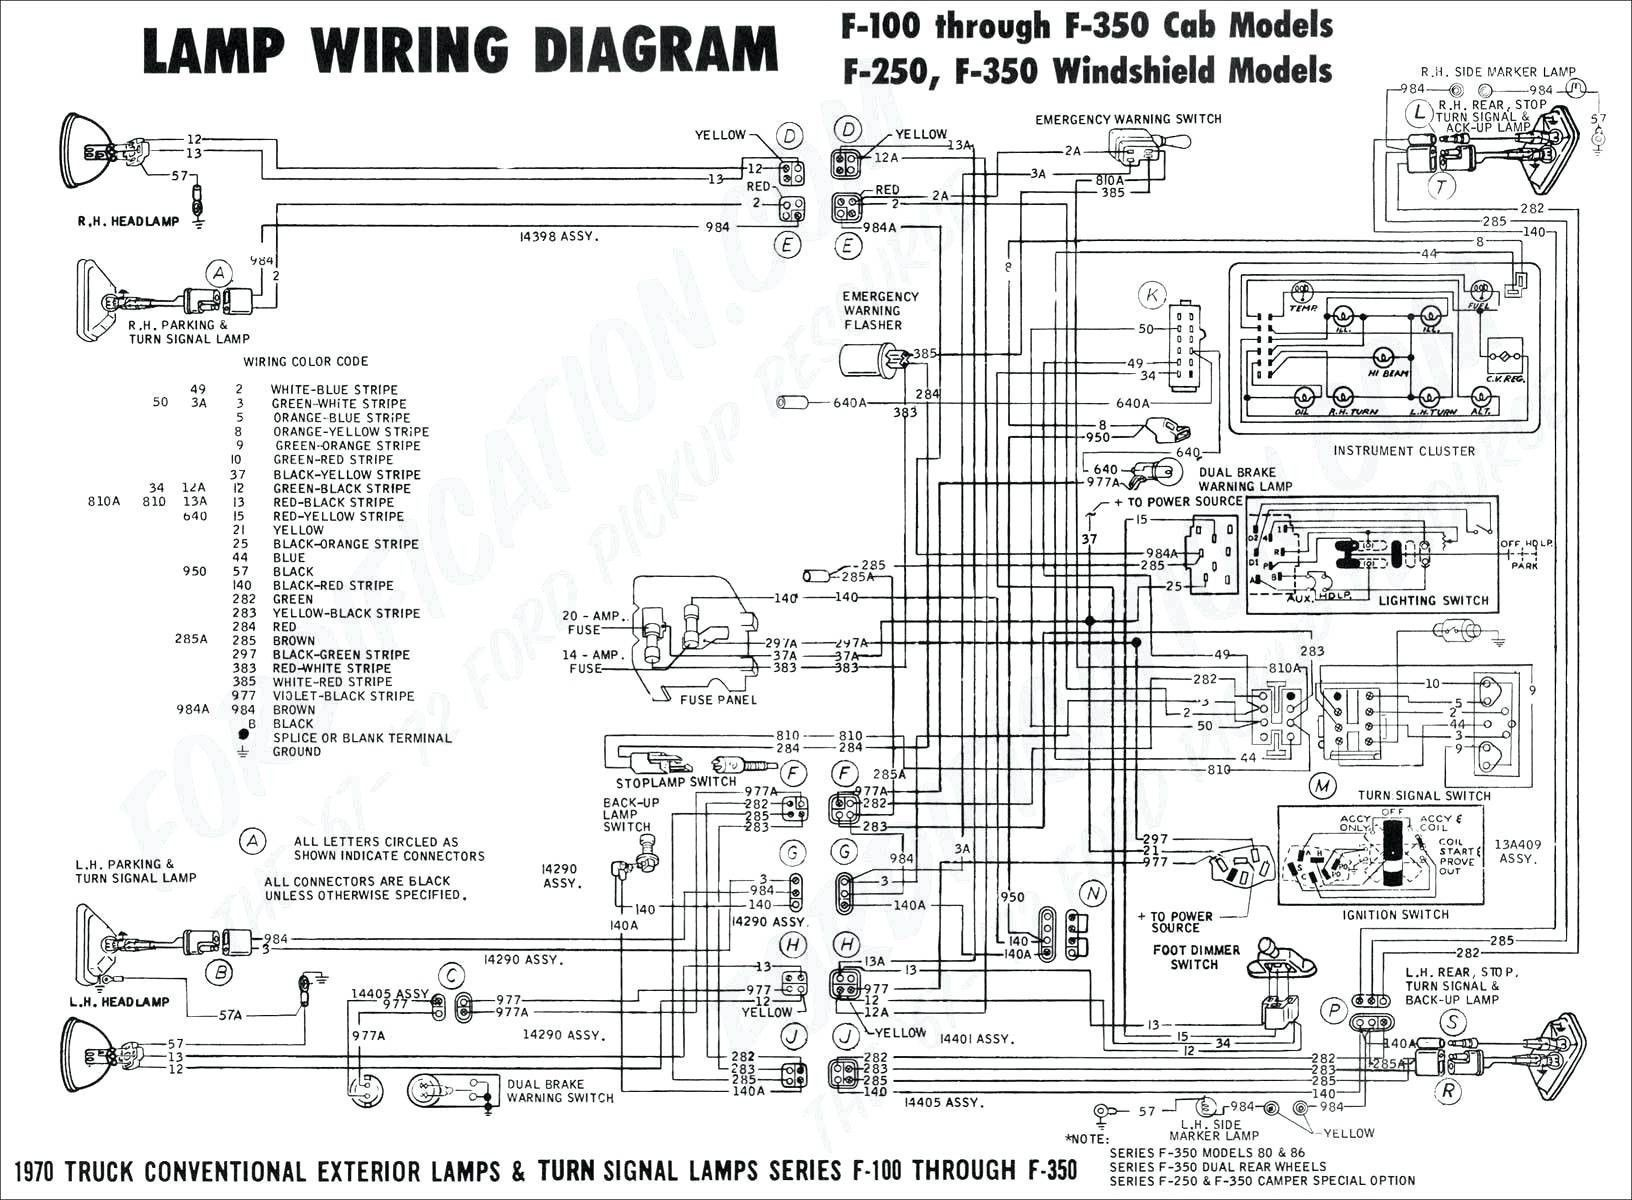 Traeger Wiring Diagram New In 2020 Electrical Wiring Diagram Trailer Wiring Diagram Diagram